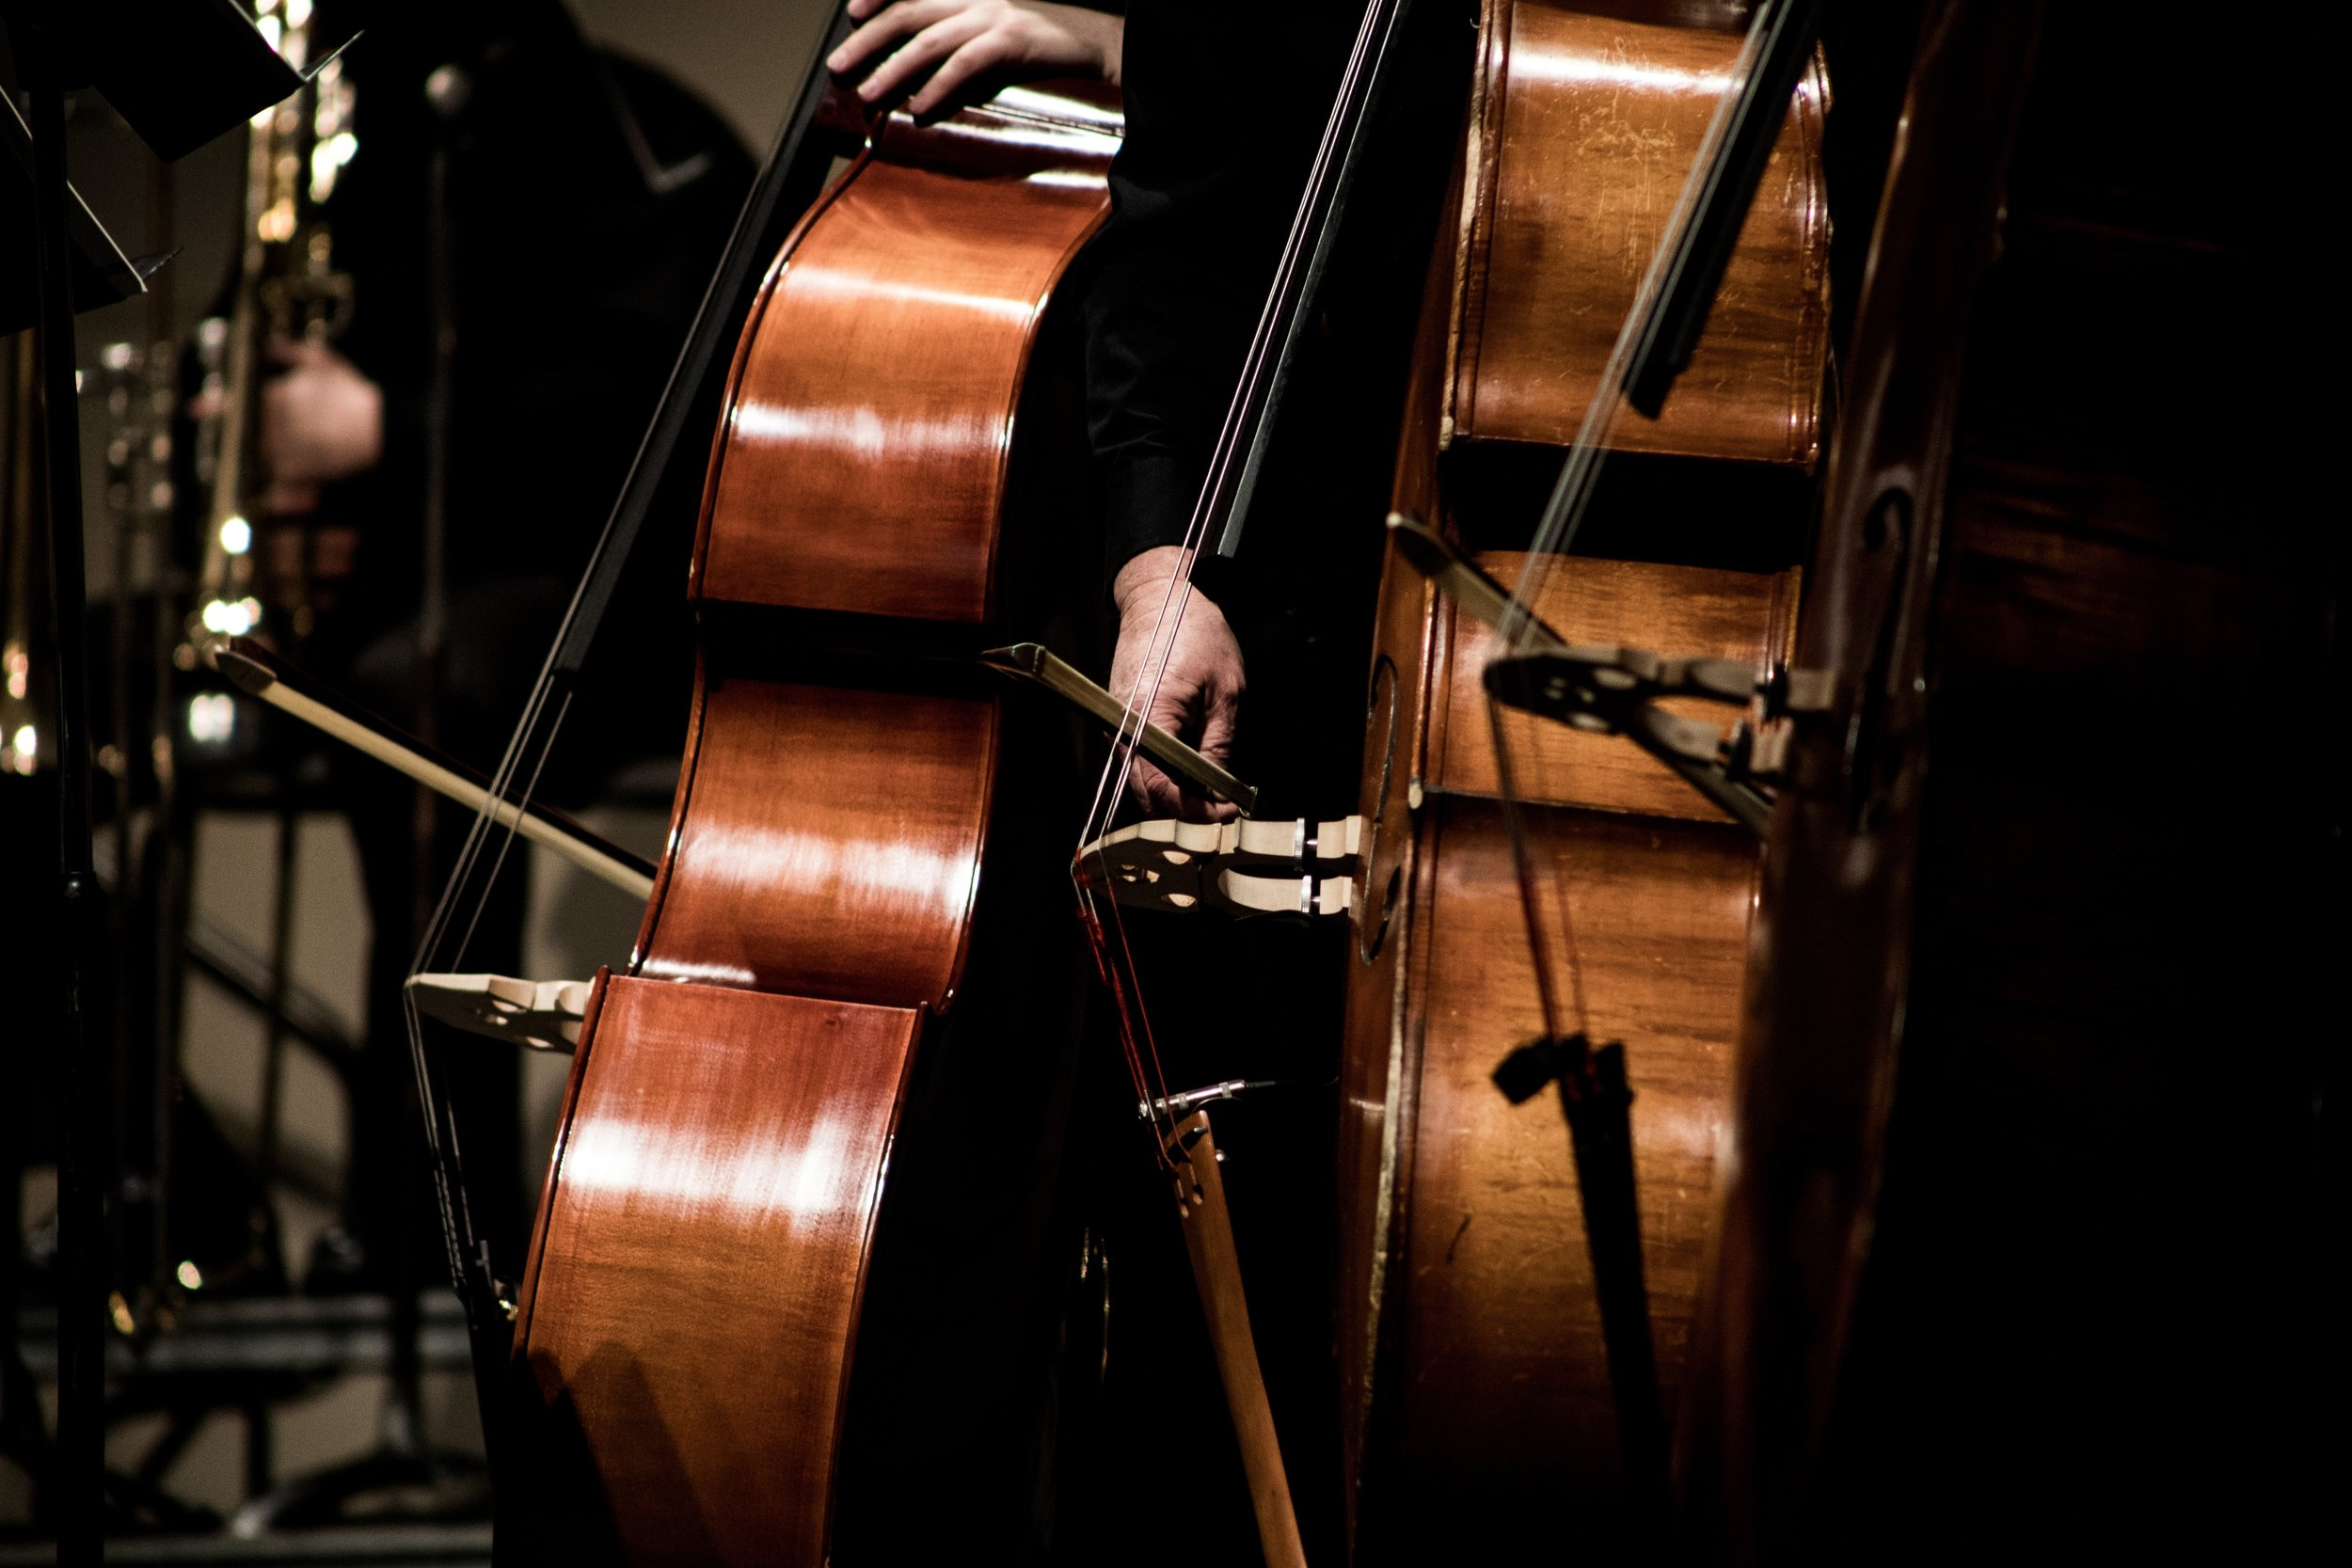 Double Bass - The big daddy of the bowed strings that the musician plays standing up (or perched on a stool). The basses play lots of harmony and rhythm, but they also play very low long notes to ground the harmony (that means: make everything sound right).